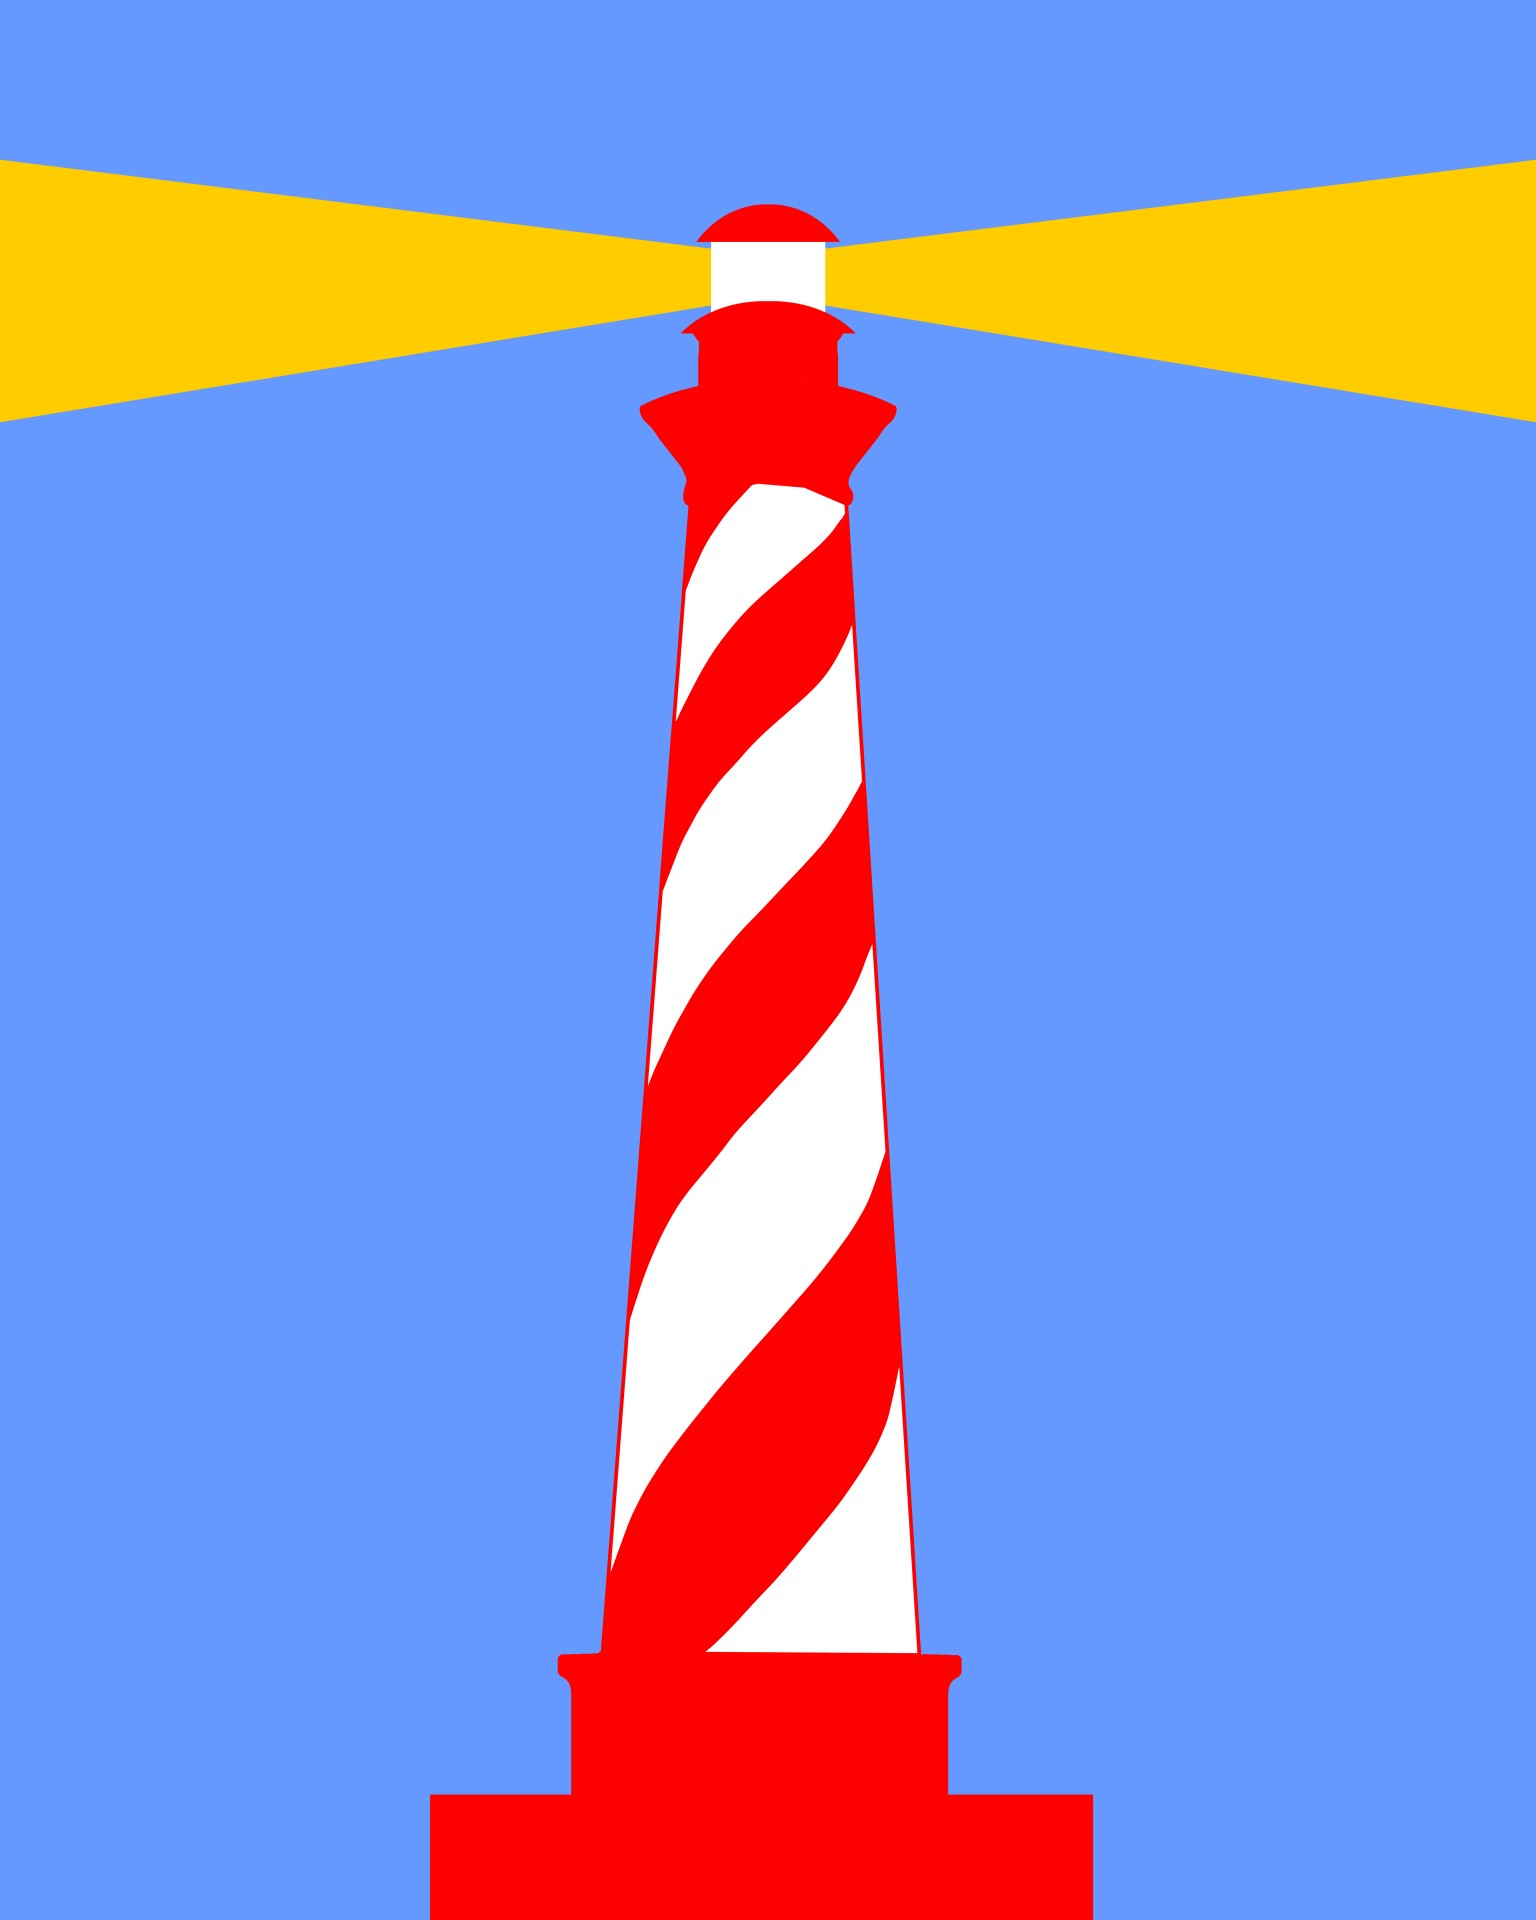 Lighthouse clipart striped. Red free stock photo